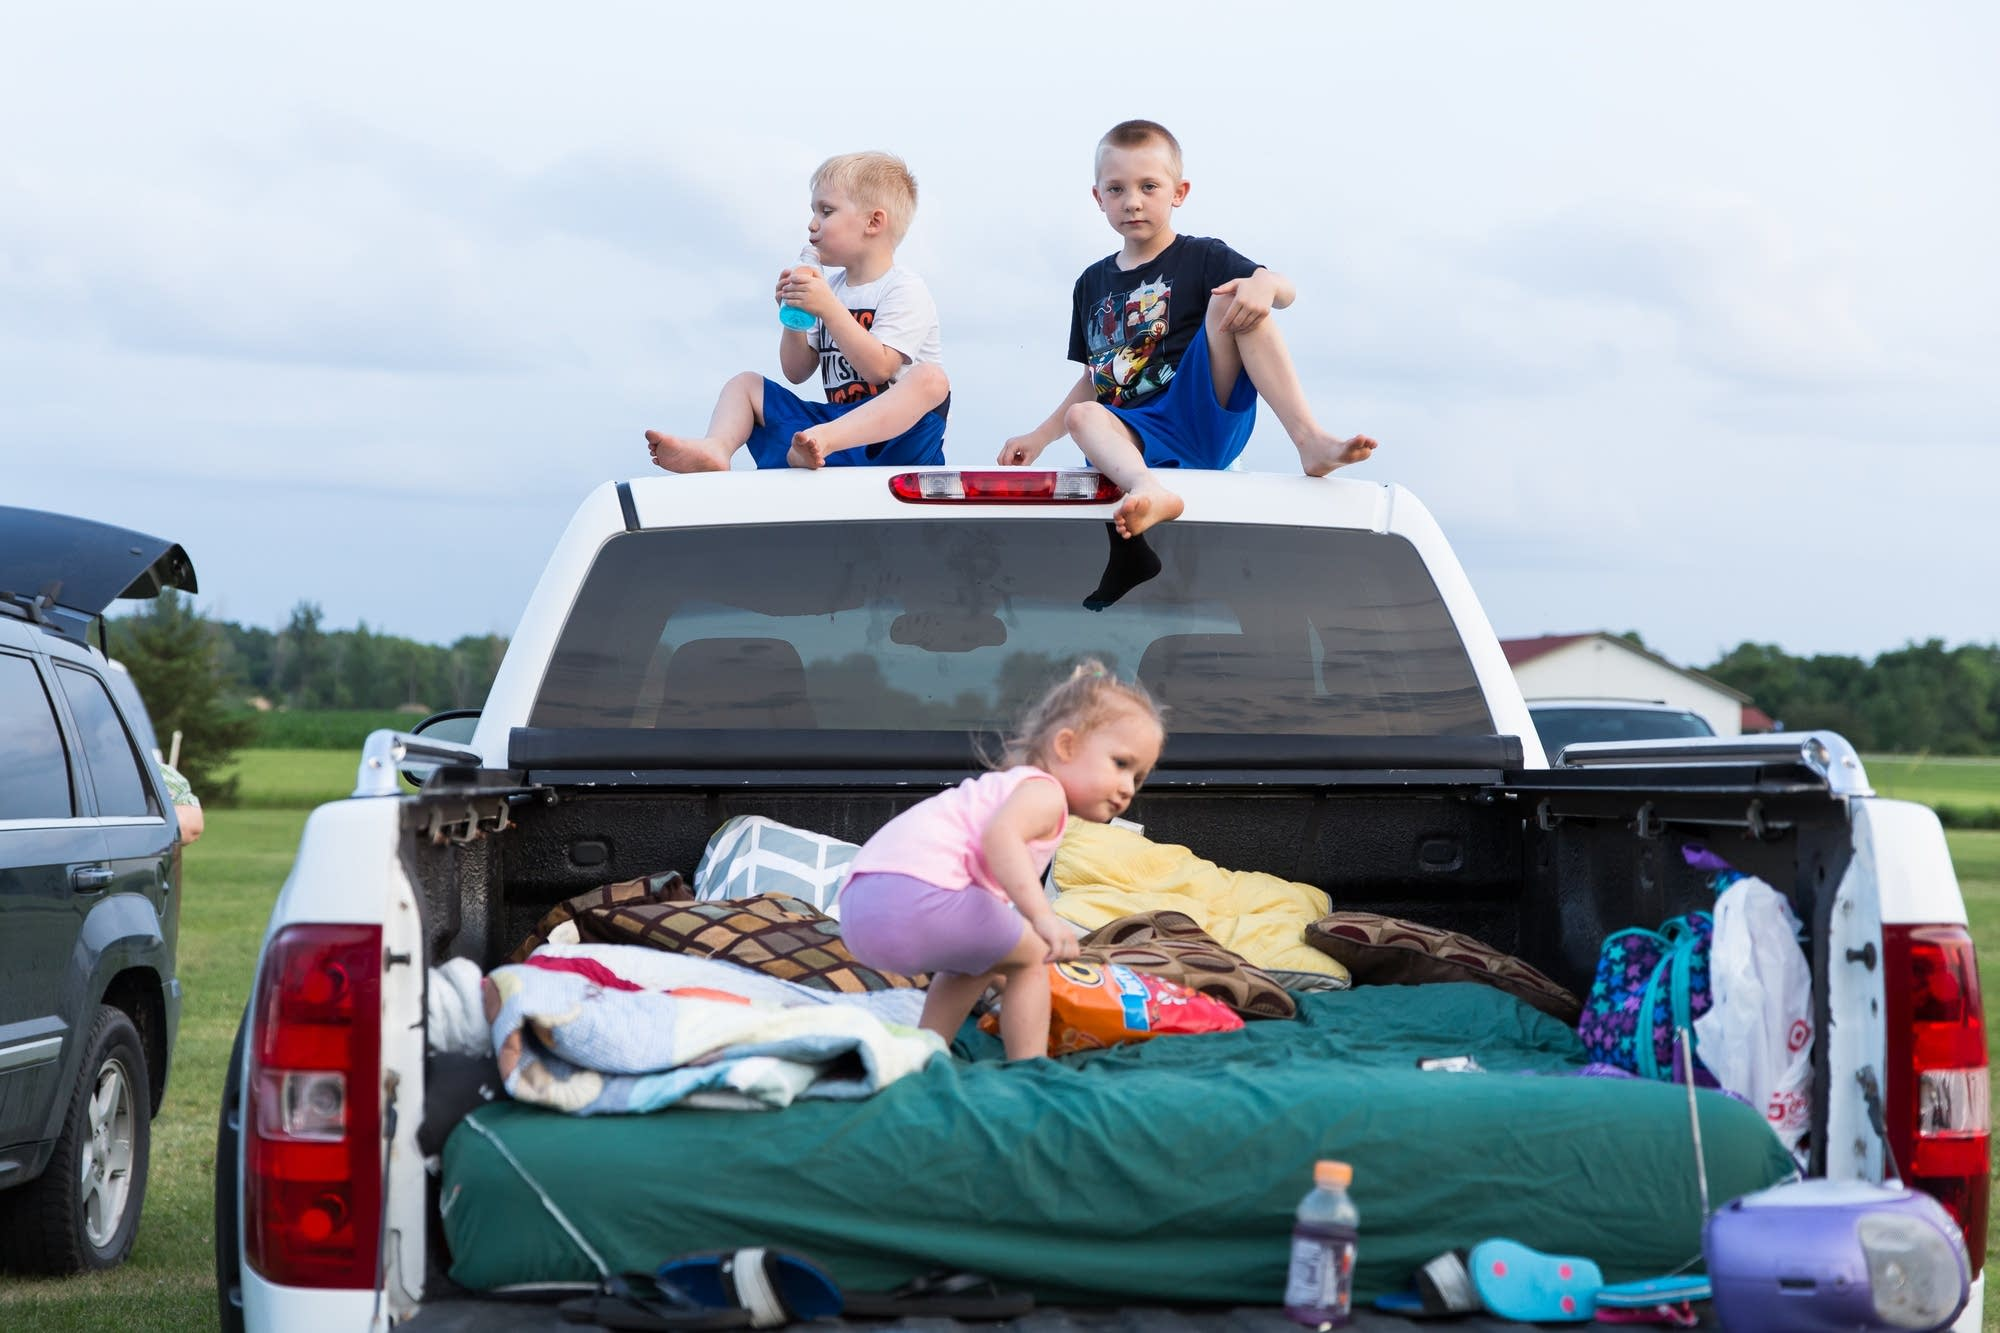 Siblings play on the back of their family's pick-up truck.